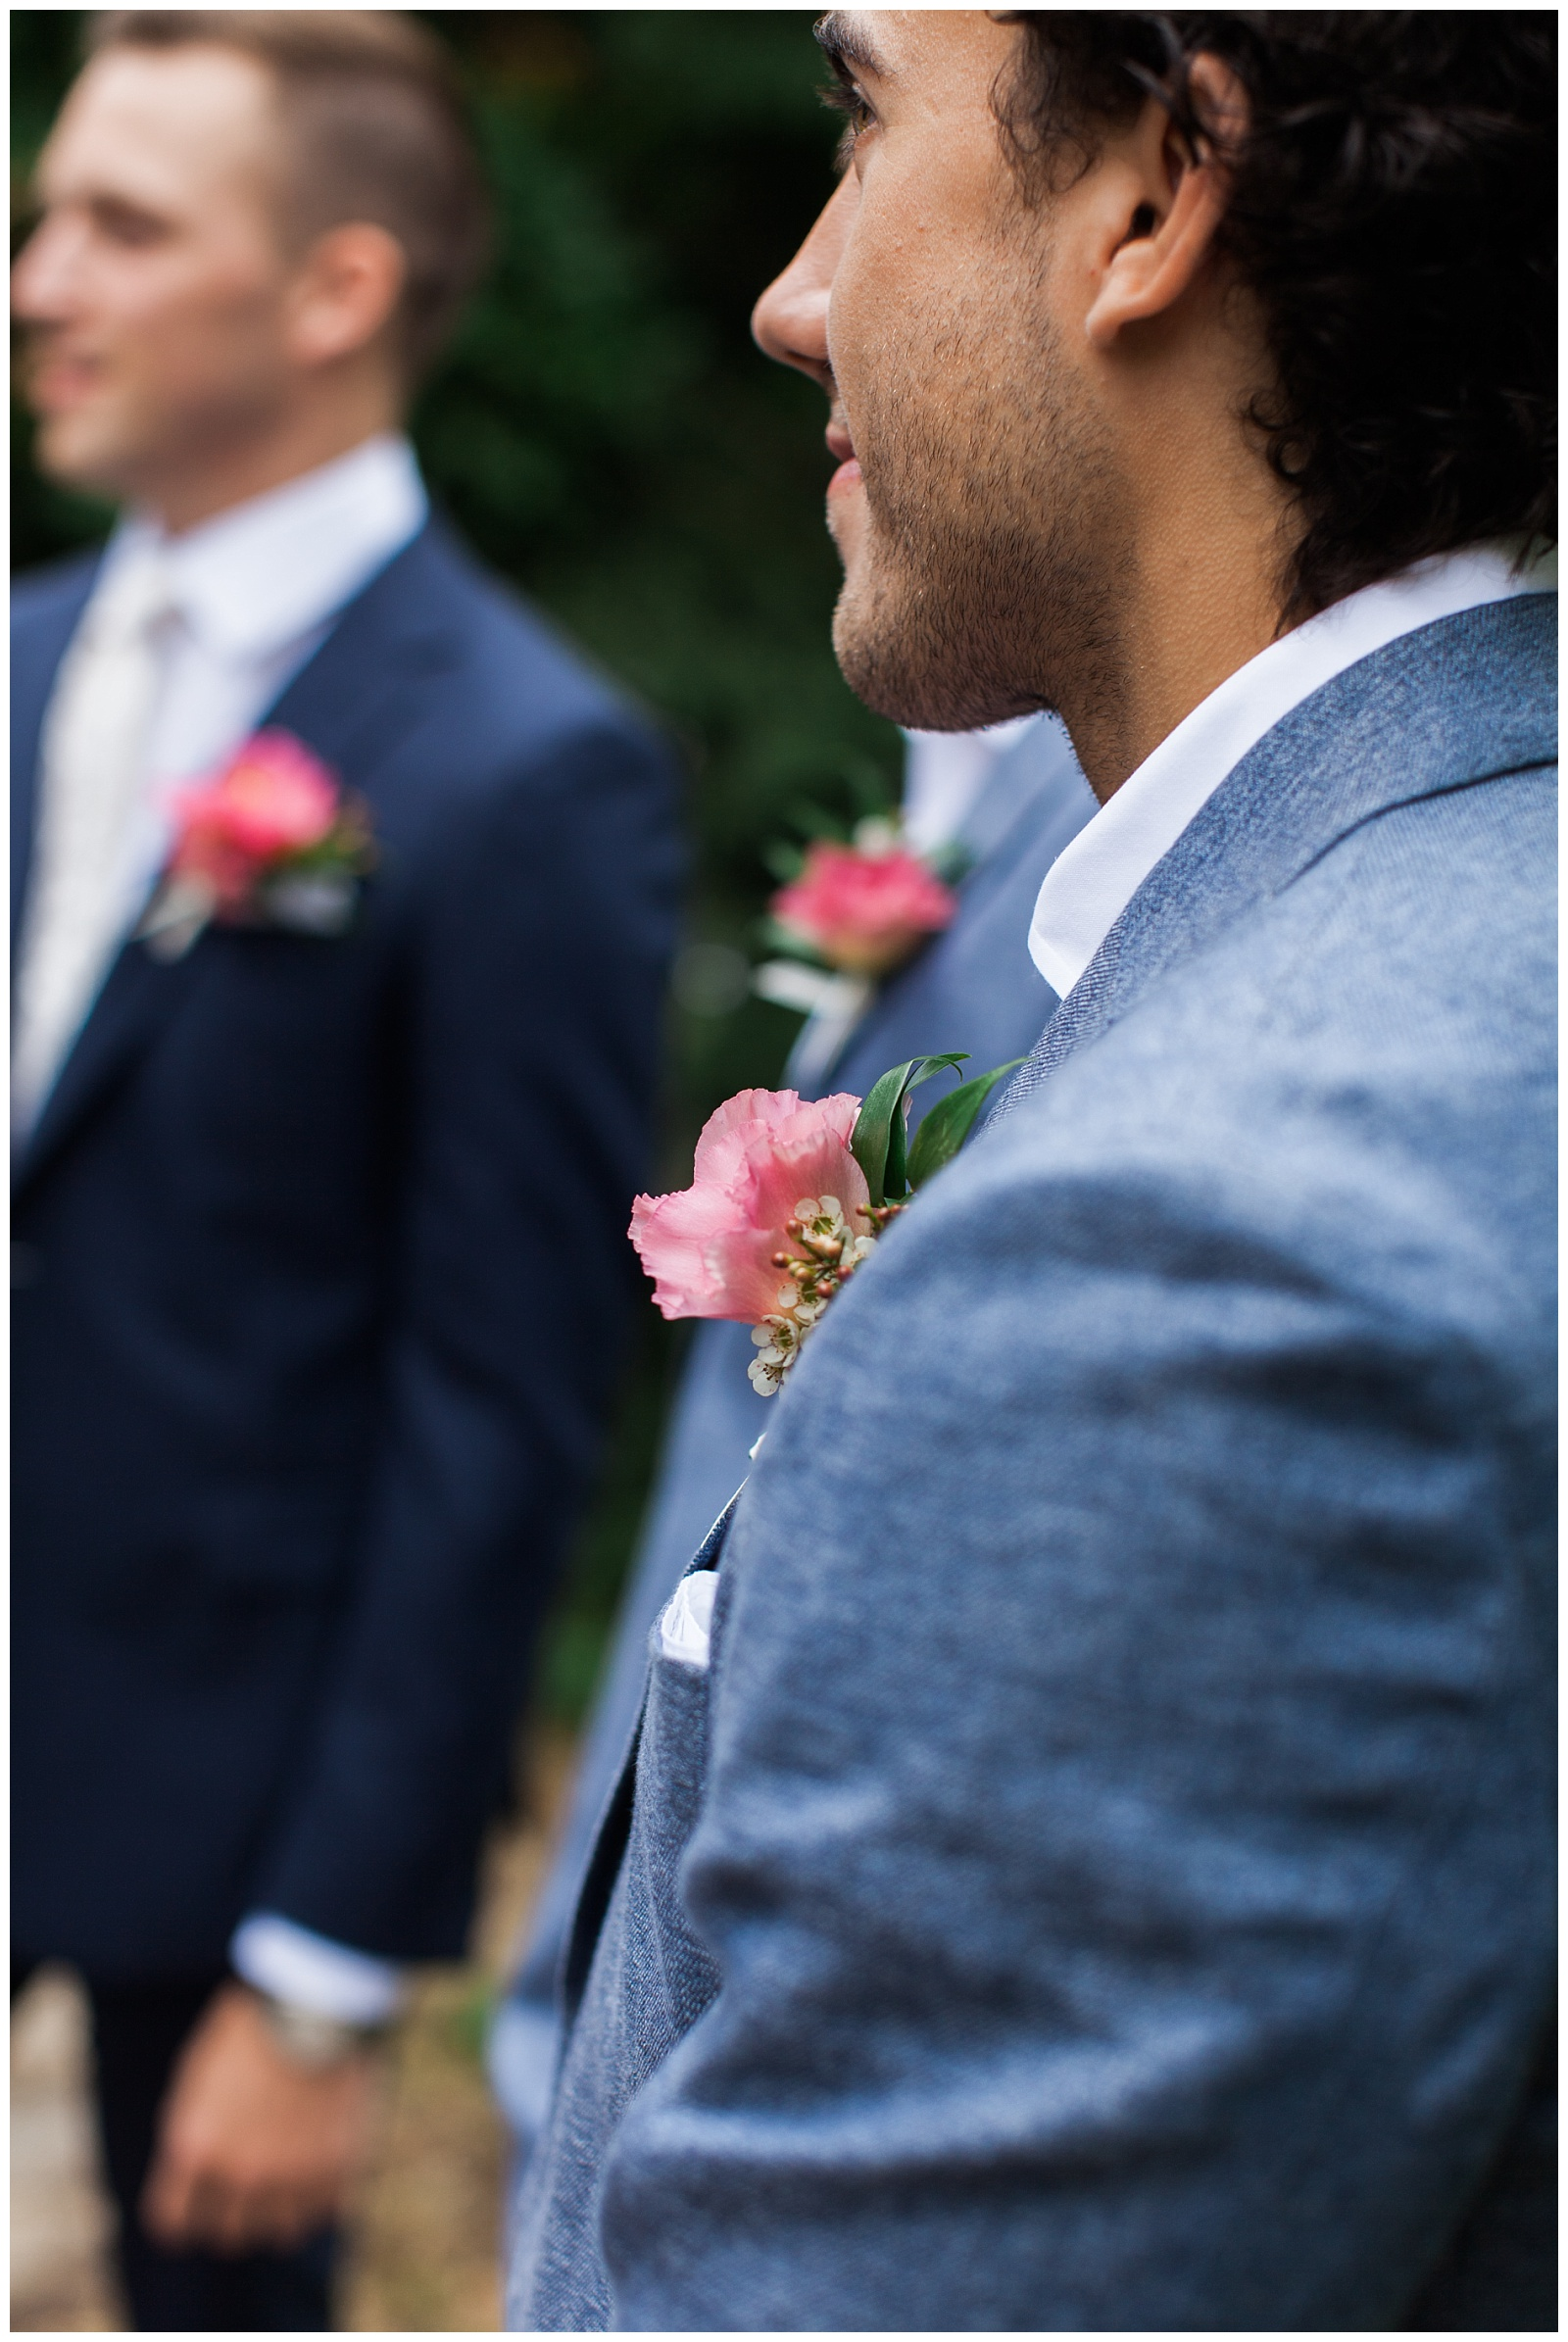 Groomsmen at Guelph Ontario Wedding | Ontario Wedding Photographer | Toronto Wedding Photographer | 3photography